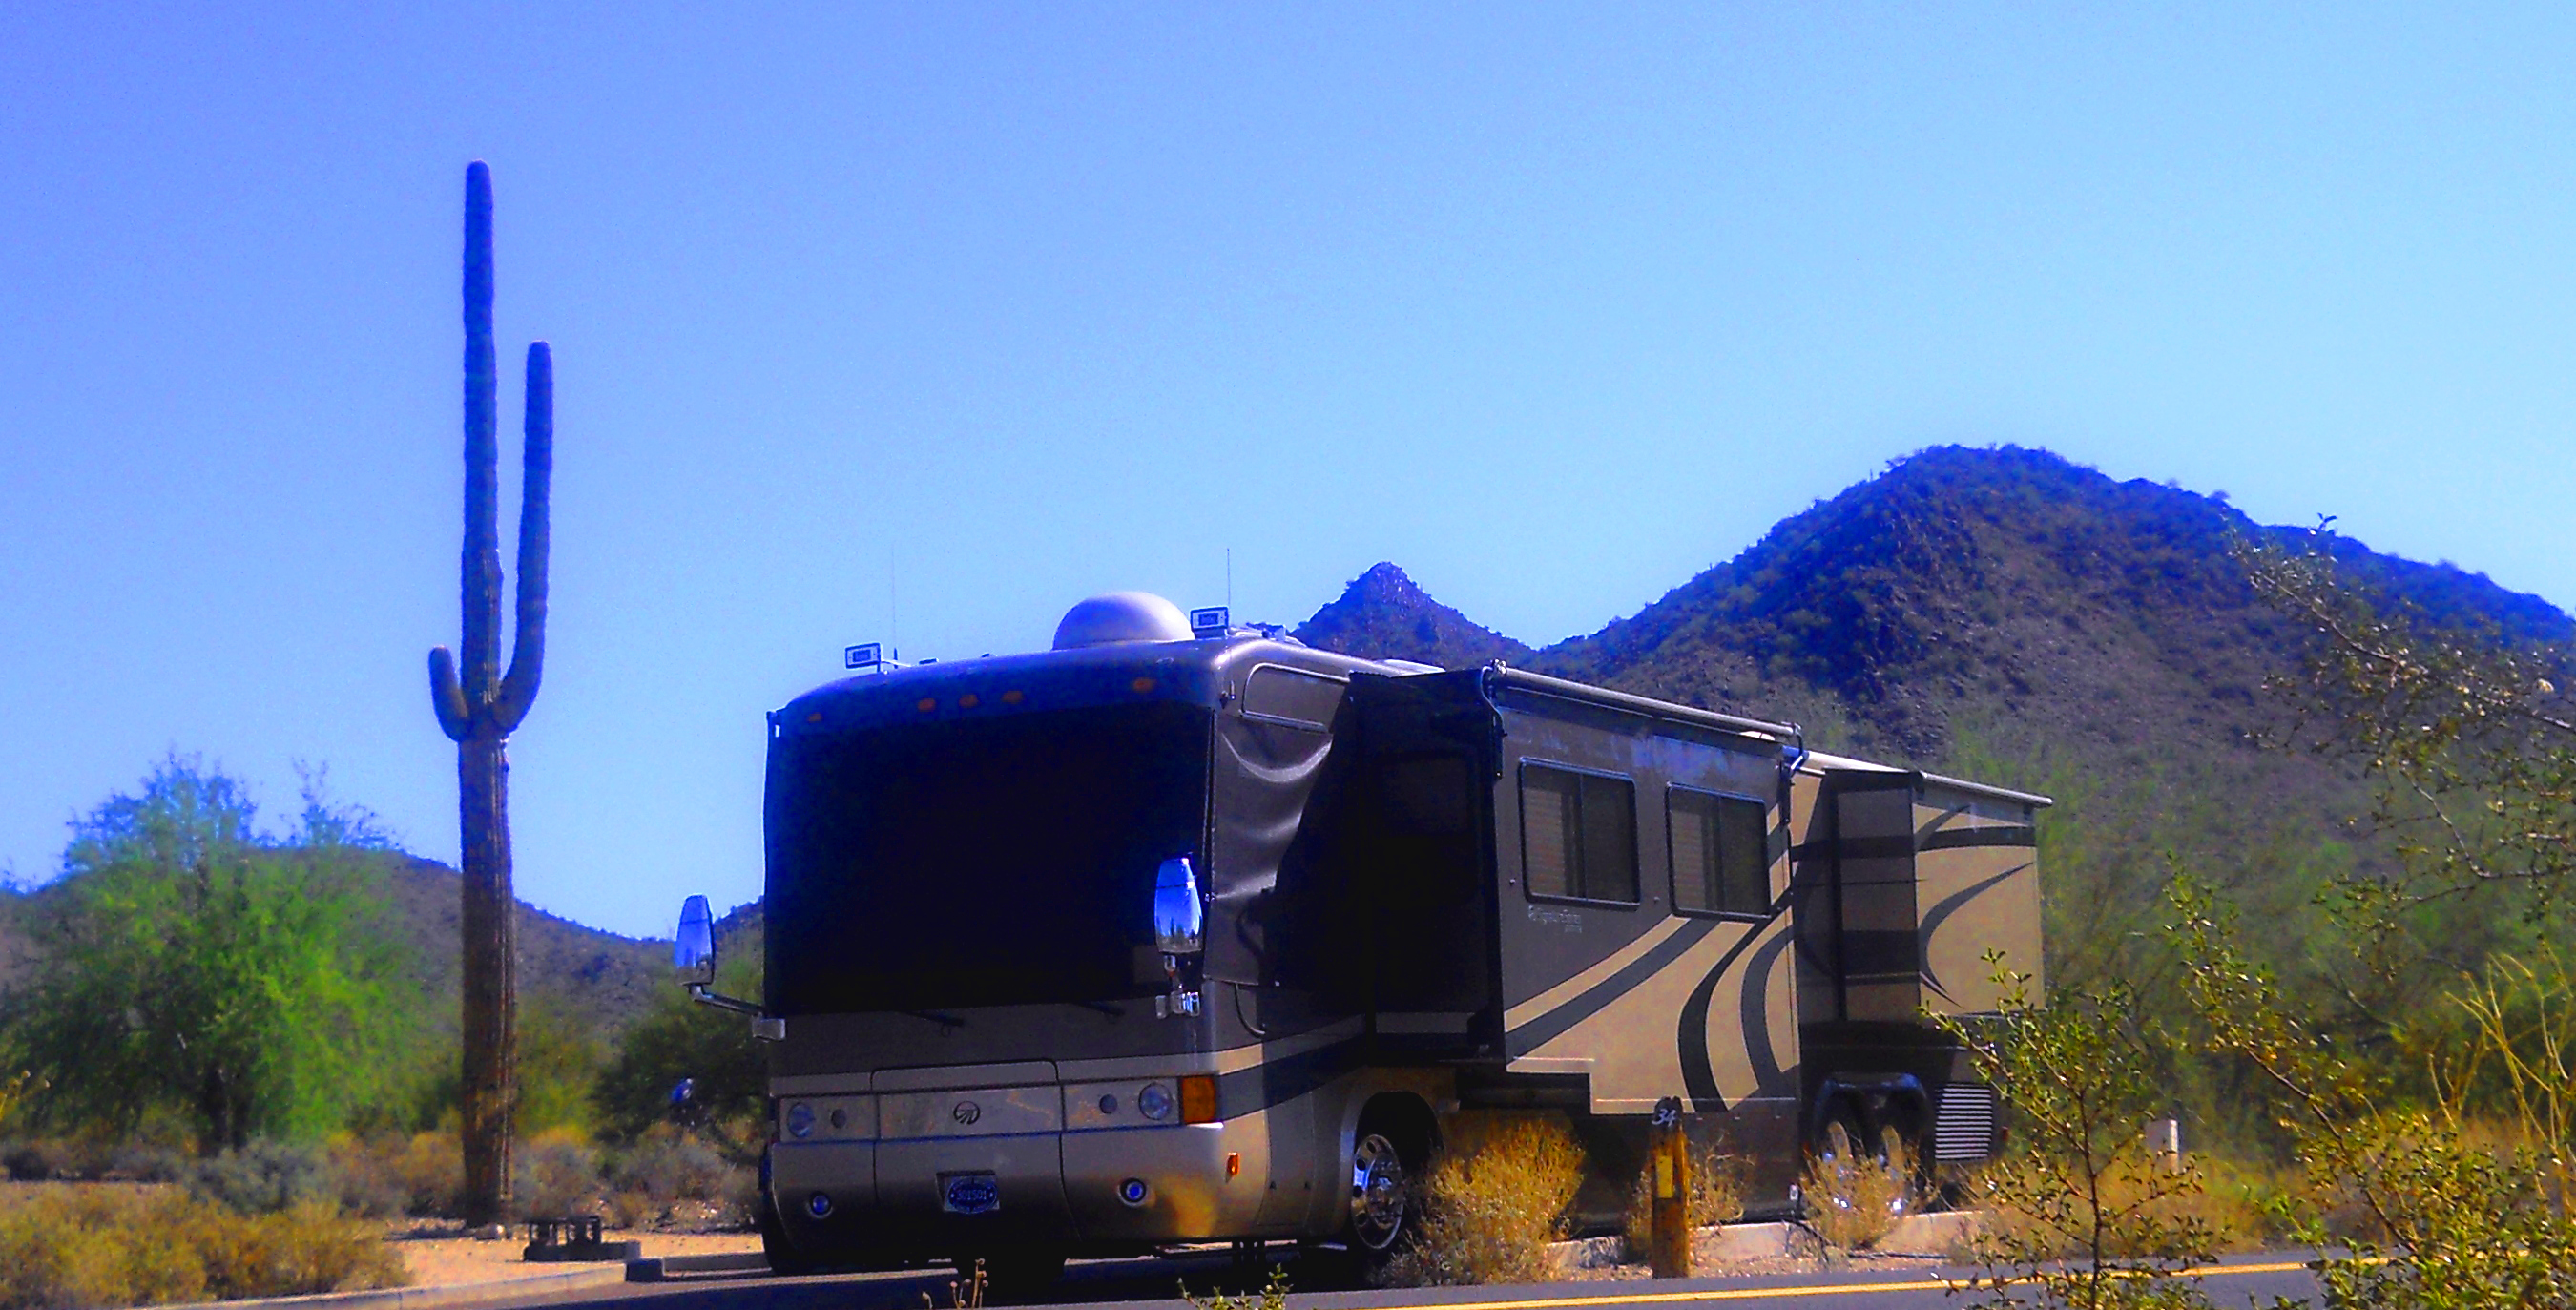 Camping_RV_2revised